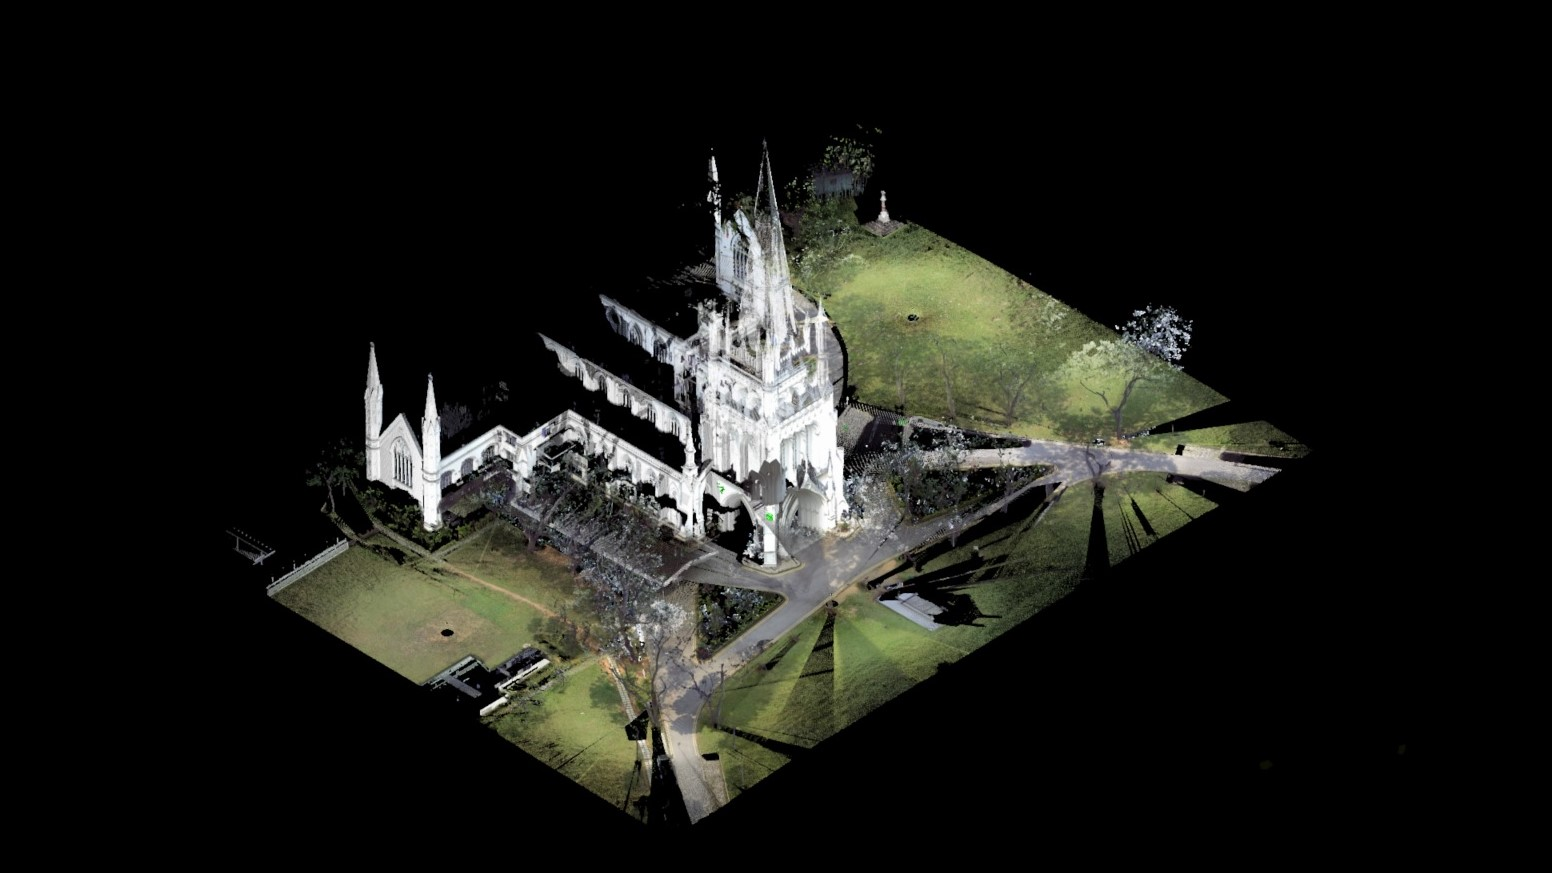 Point cloud of saint andrew's cathedral